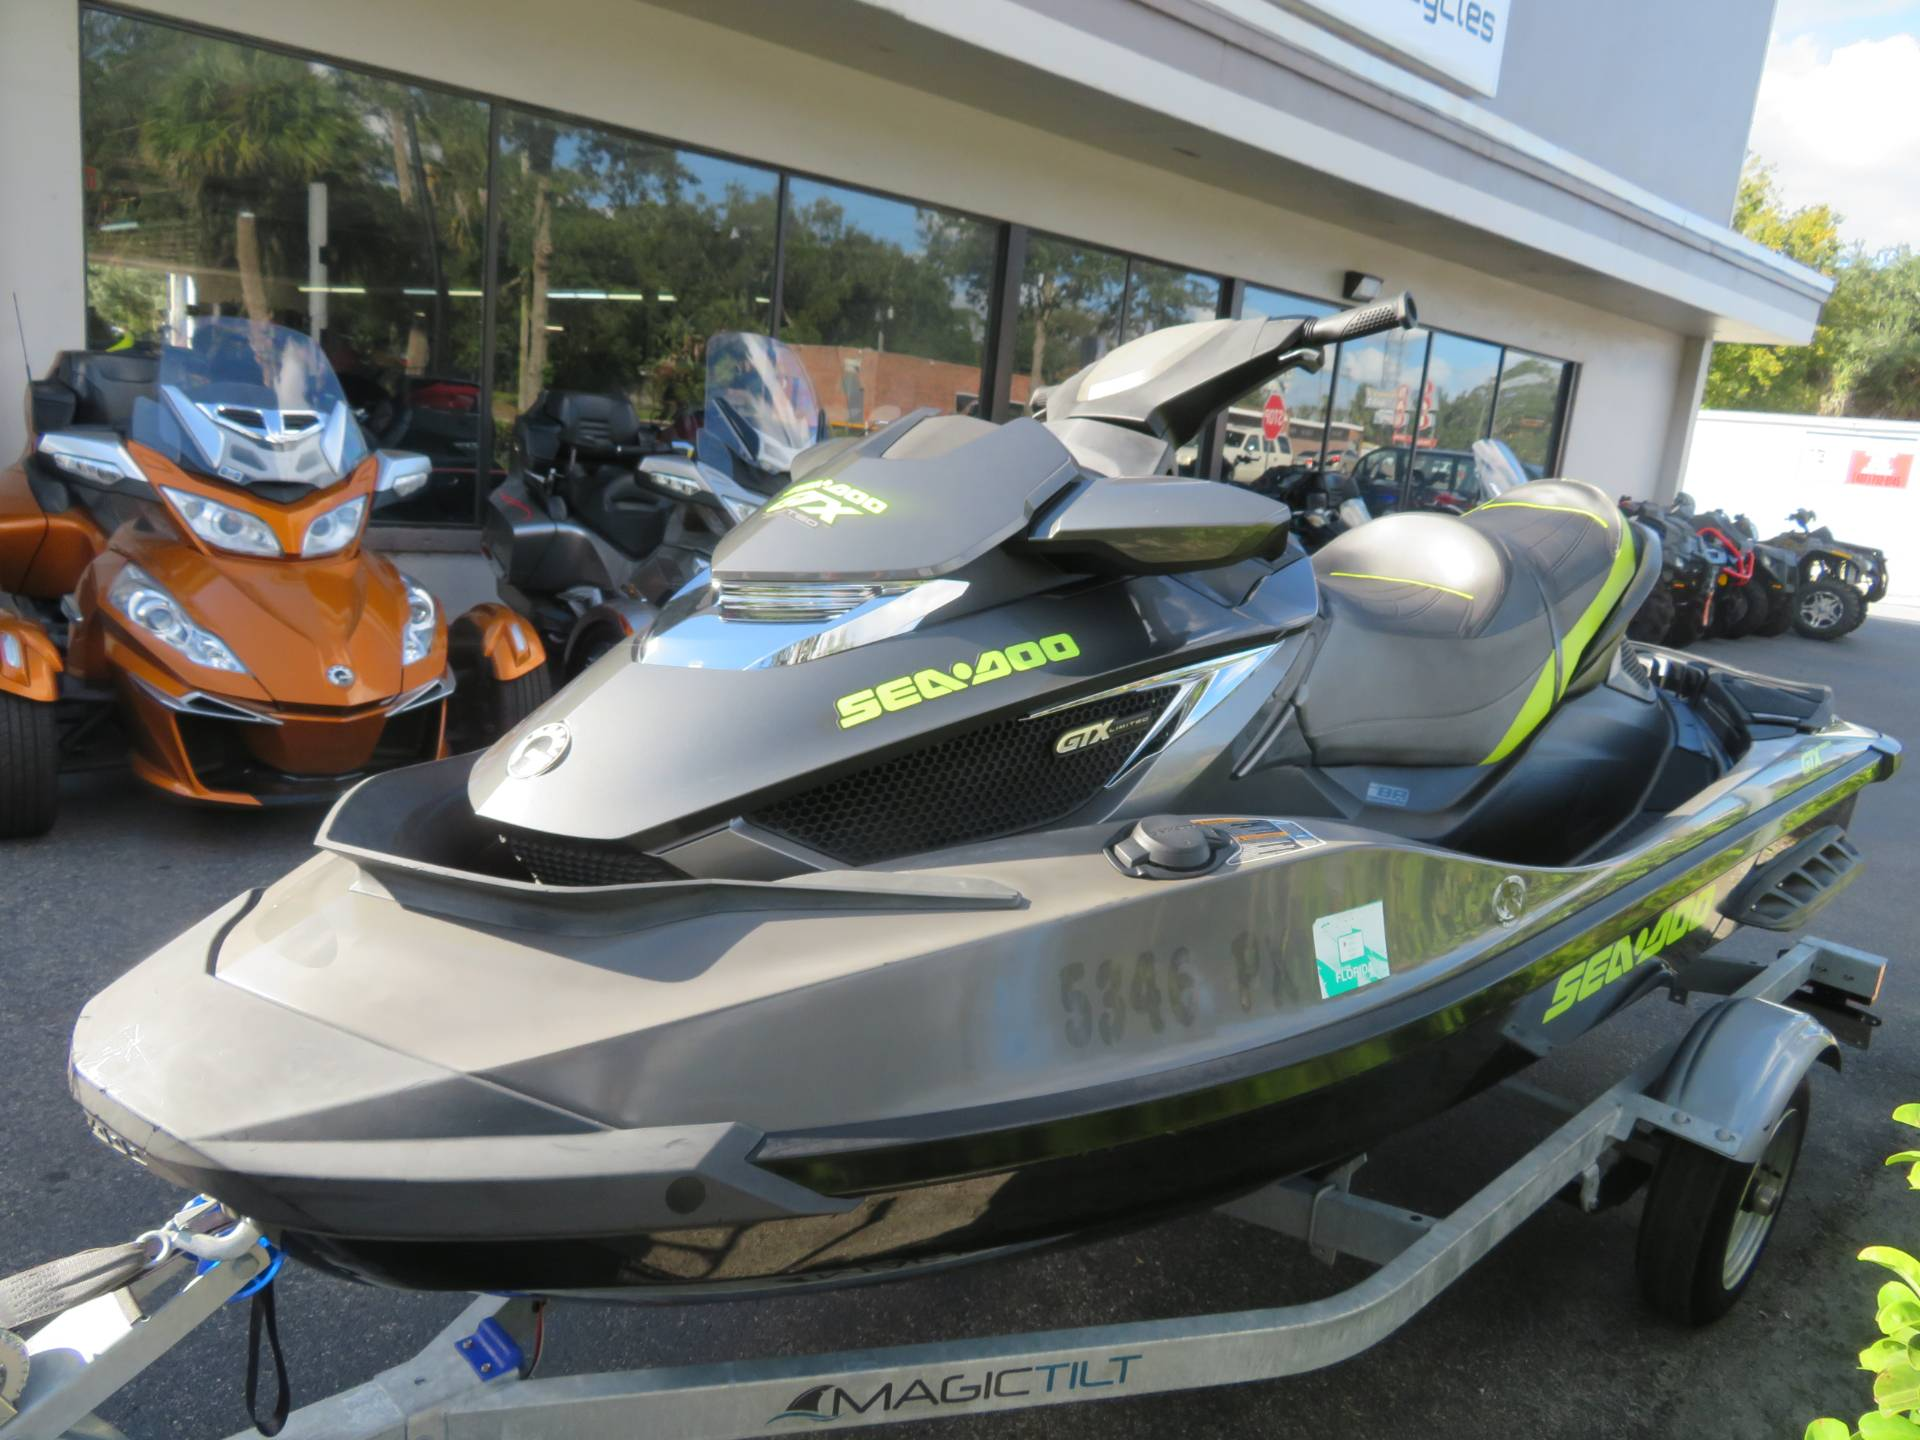 2015 Sea-Doo GTX Limited iS™ 260 in Sanford, Florida - Photo 6